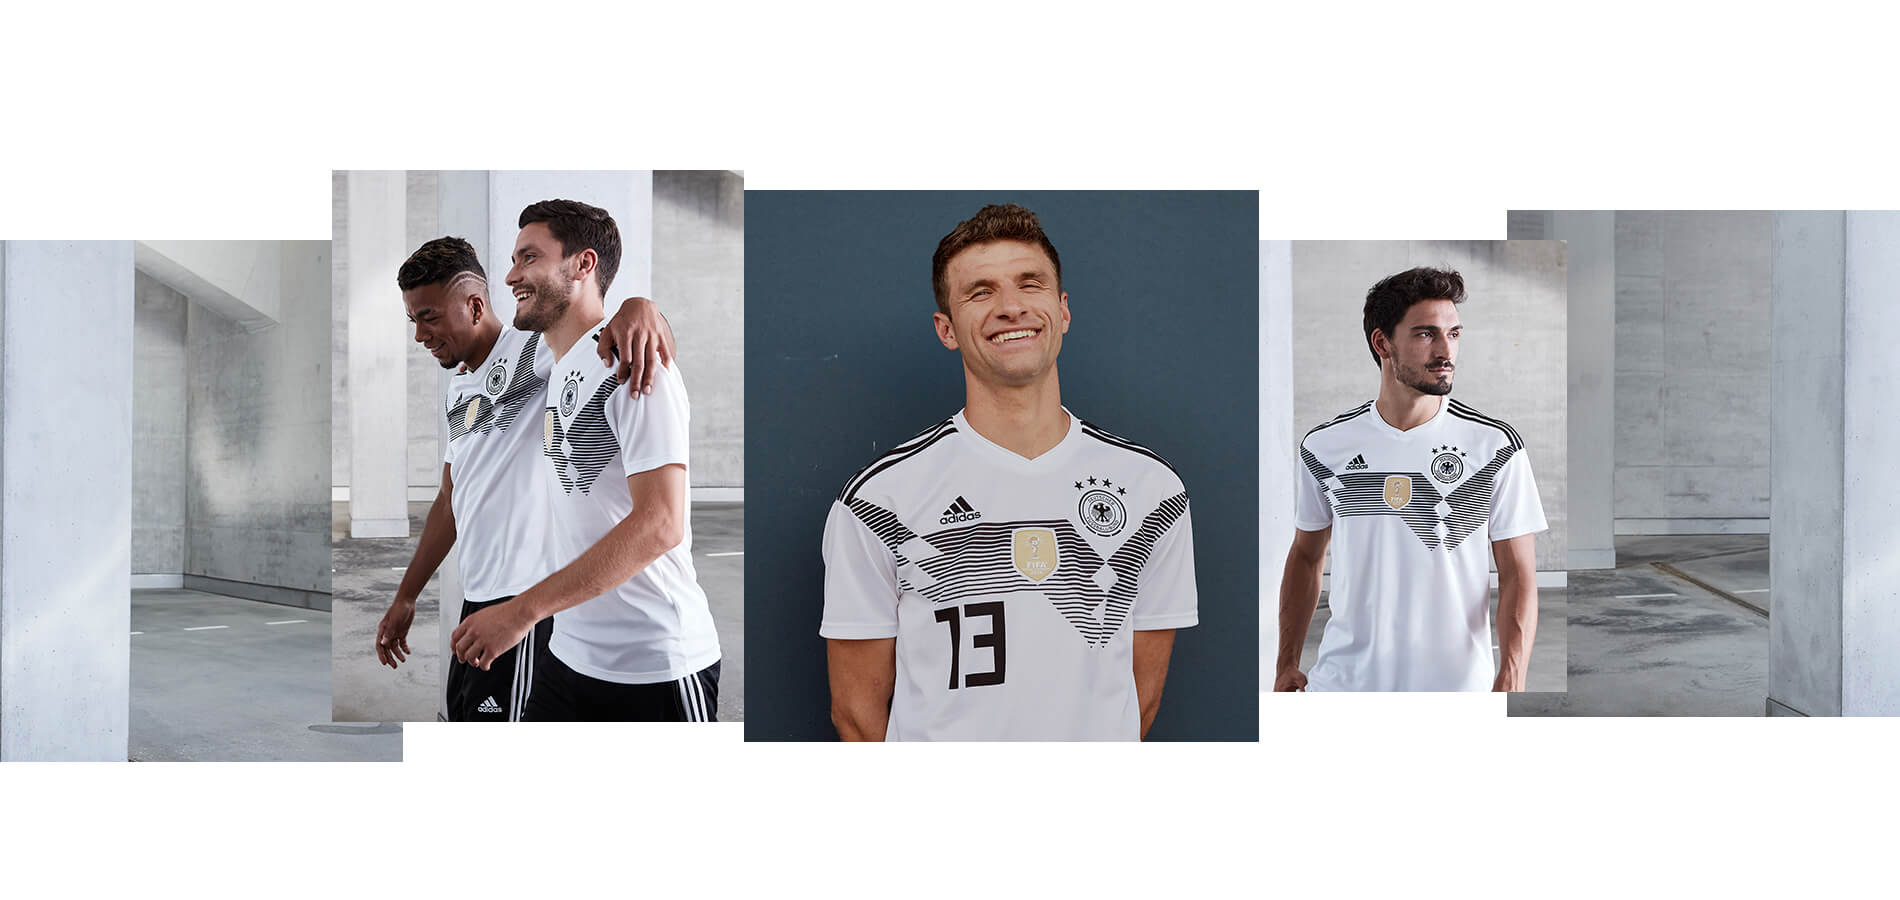 Allemagne 2018 maillot football coupe du monde 2018 officiel